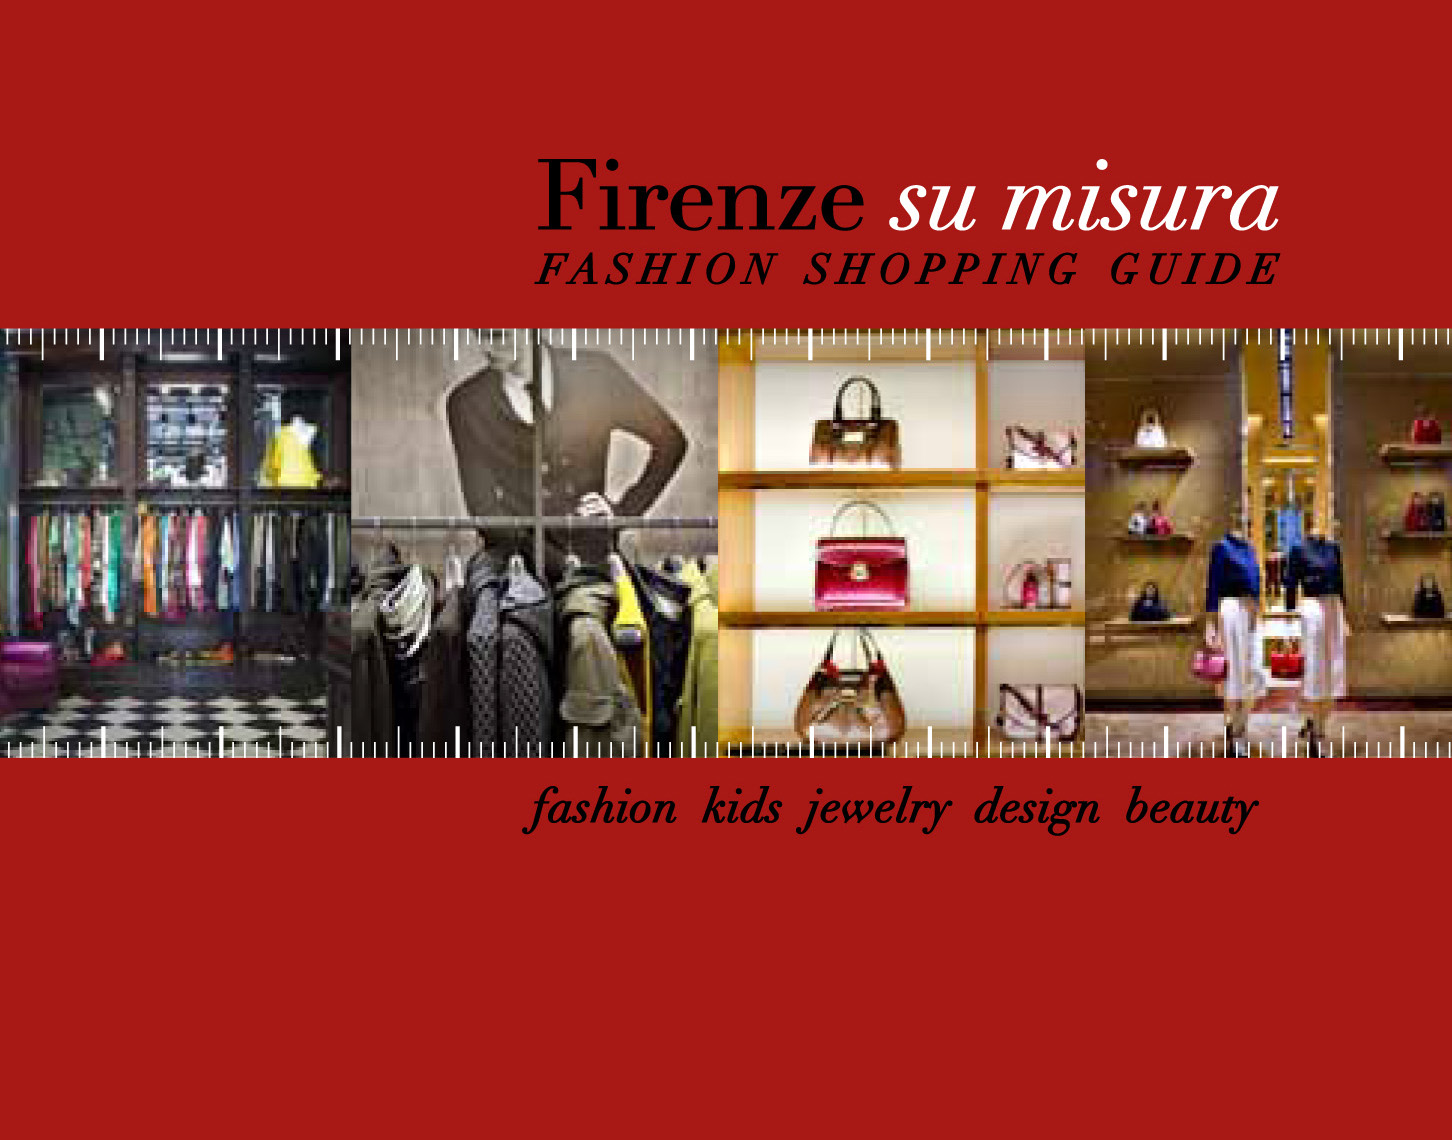 Firenze su misura - Fashion Shopping Guide